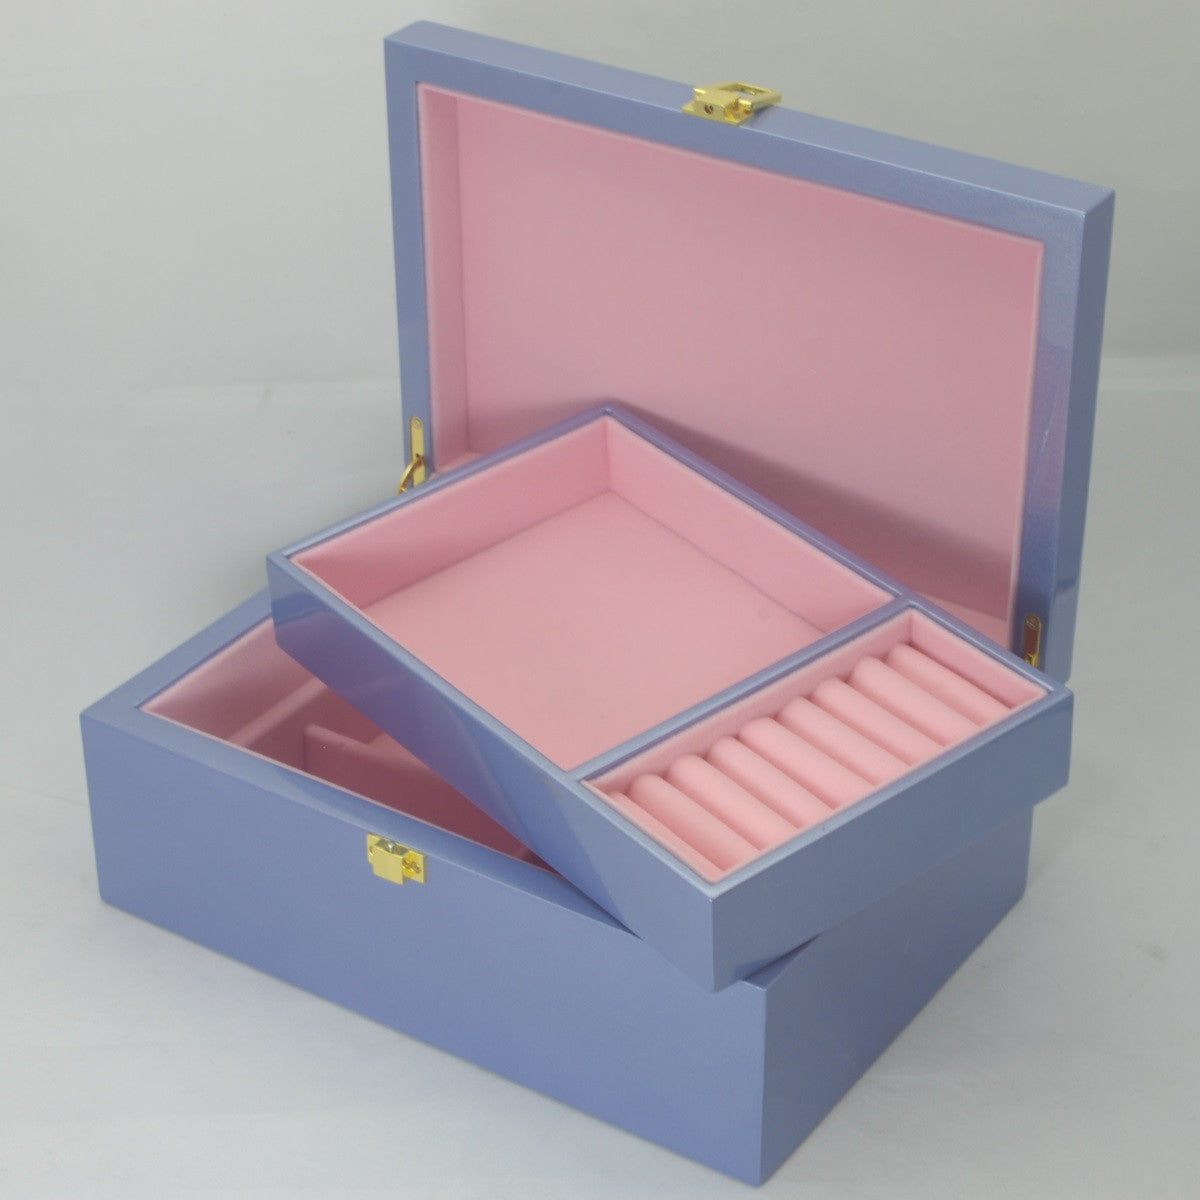 Kandi Jewellery Box Pink Interior, Metallic Blue Finish, 25cm